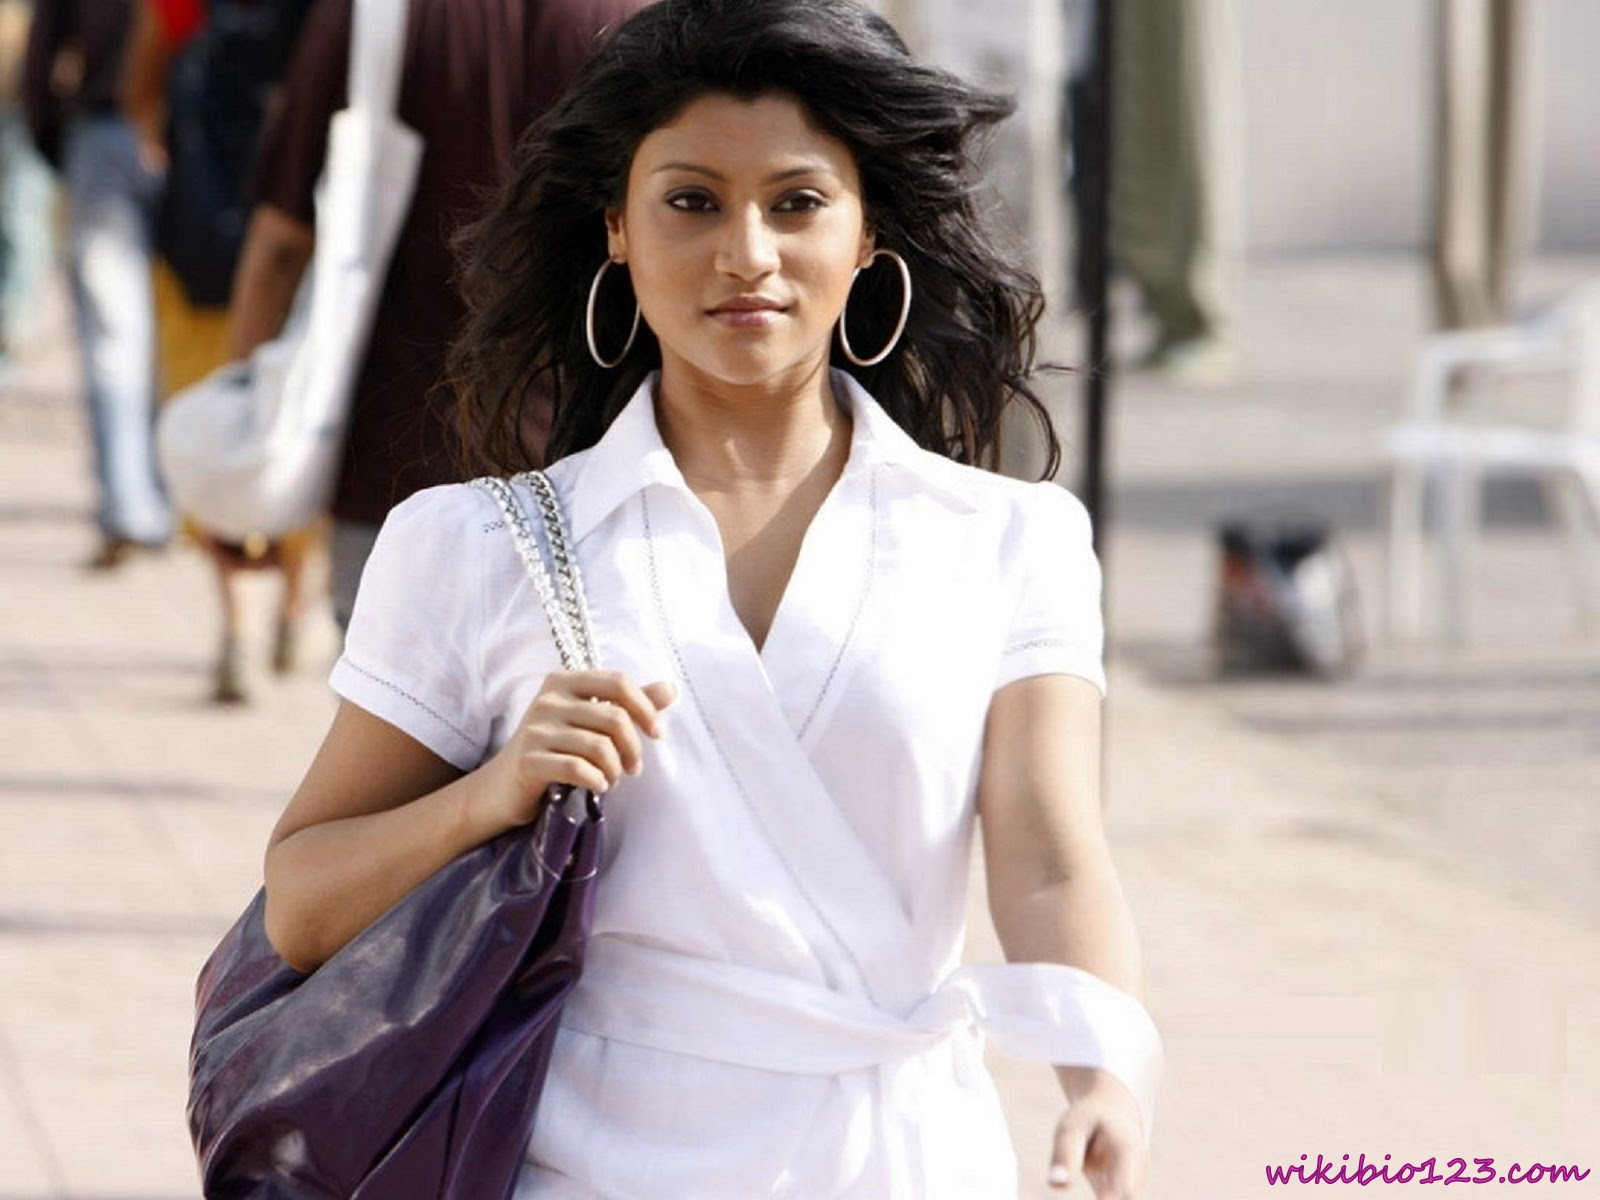 Konkona Sen Sharma wiki Bio Age Figure size Height HD Images Wallpapers Download